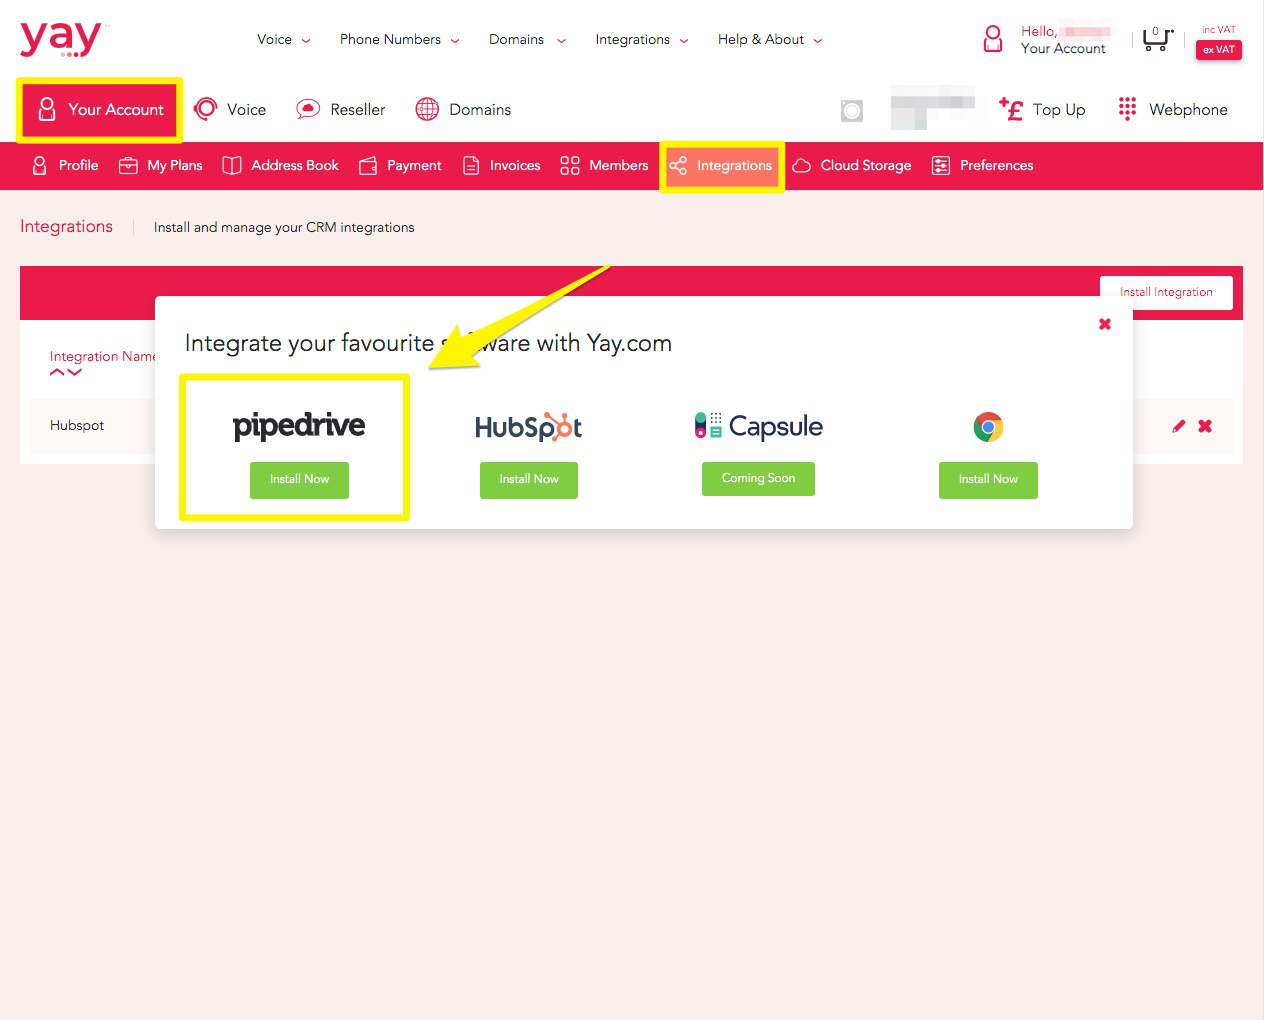 Navigating to the integrations tab